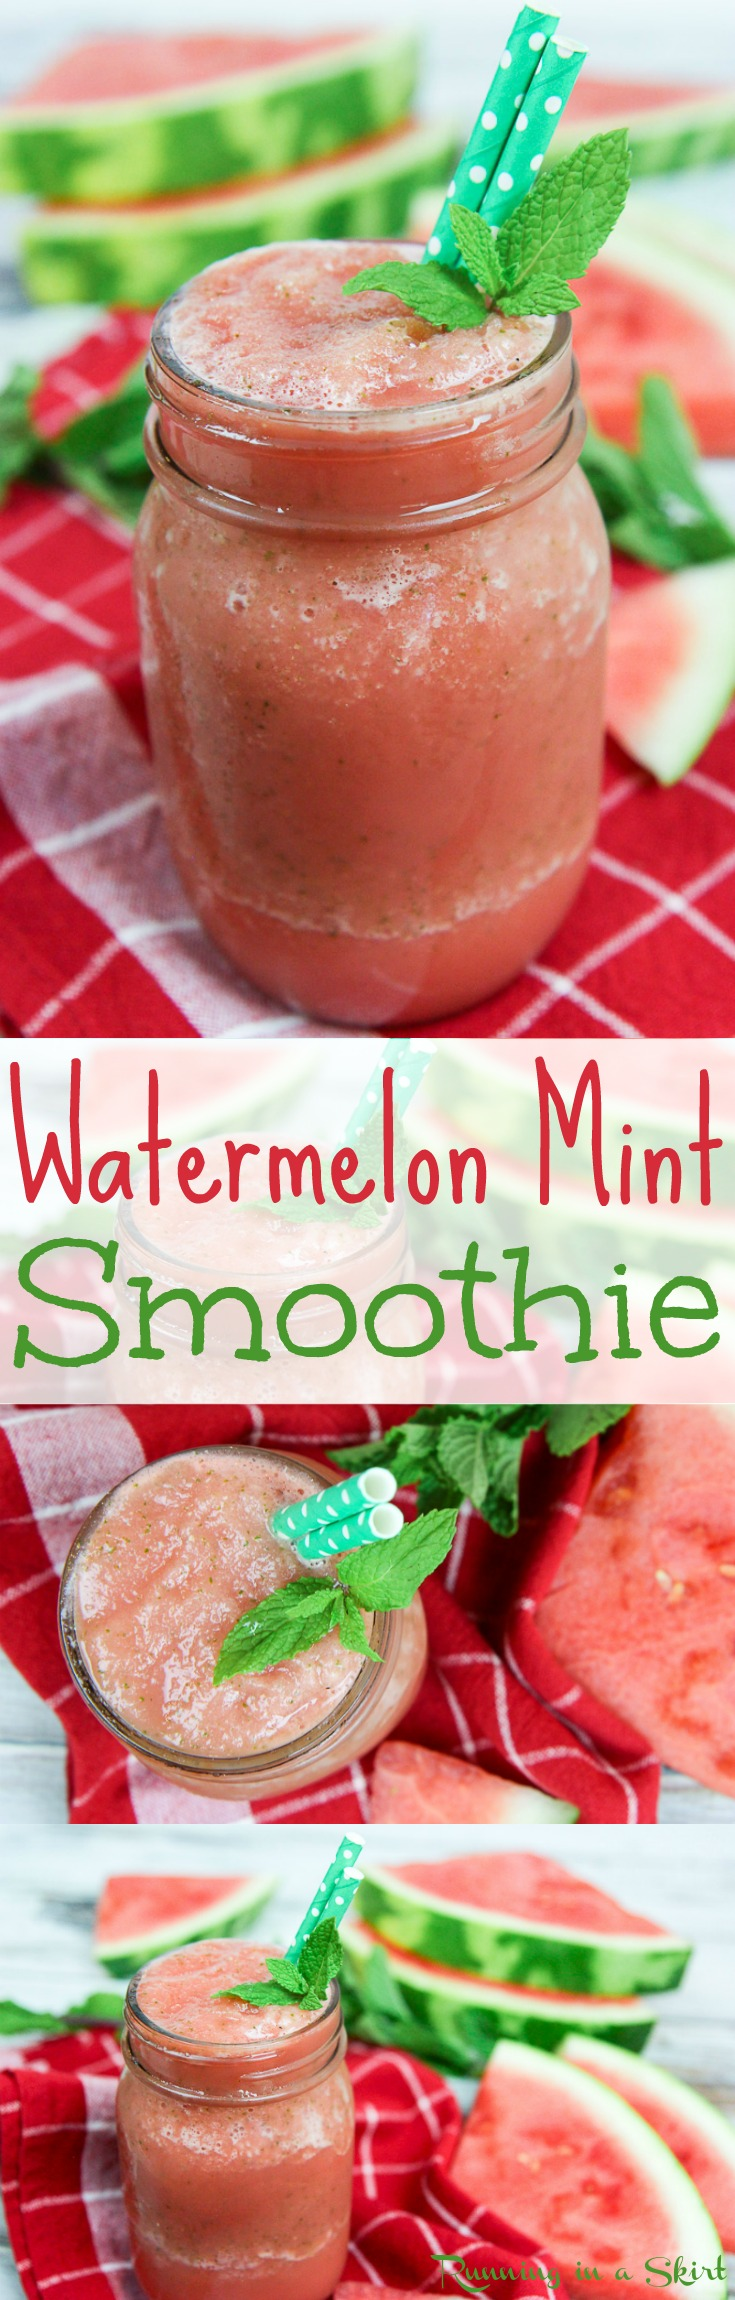 Healthy Watermelon Mint Smoothie recipe! A hydrating and refreshing idea for summer drinks. An easy, simple, vegan, gluten free, and clean eating watermelon smoothie drink. Perfect for summer mornings, snacks or after working out! / Running in a Skirt via @juliewunder